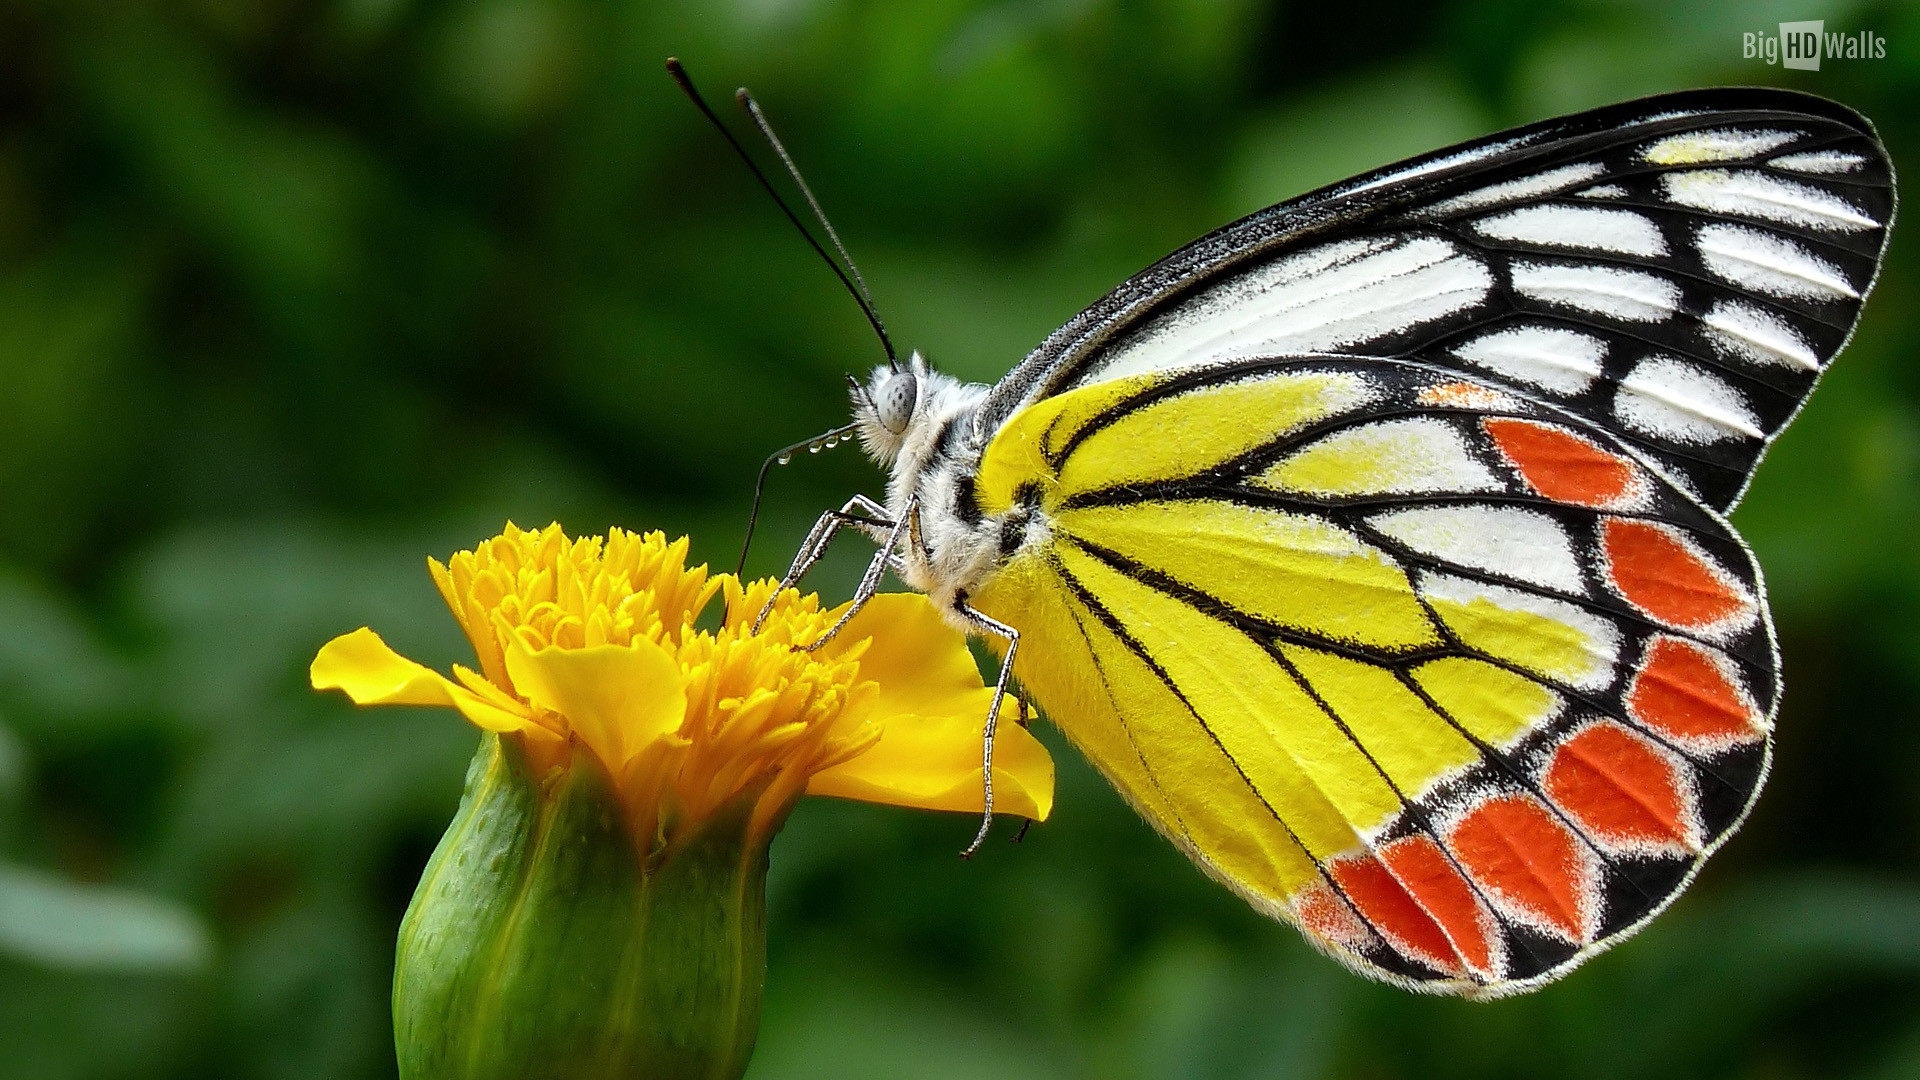 Butterflies Wallpapers Hd Download: Butterfly HD Wallpaper (68+ Images